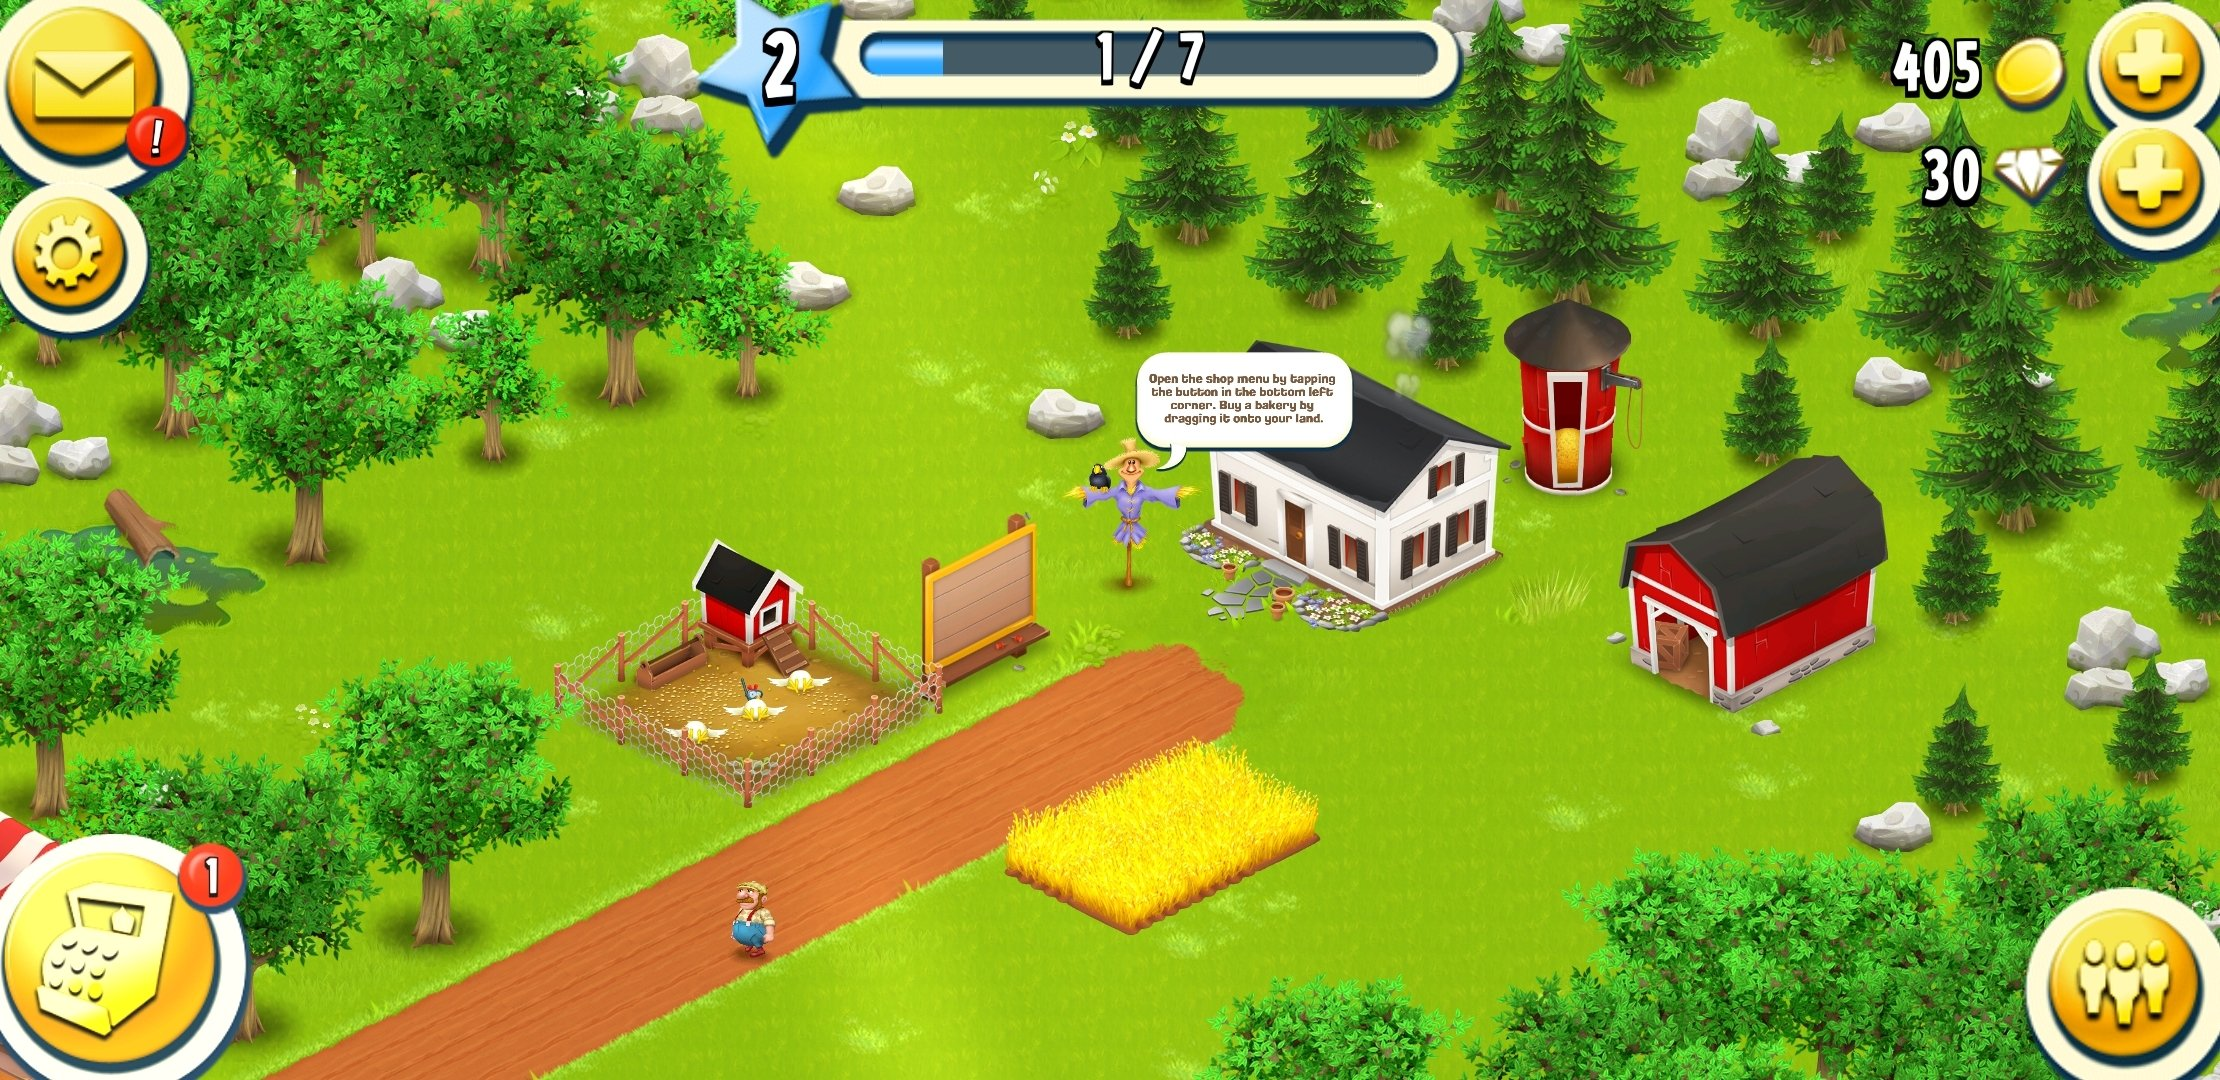 free download hay day hack tool for android